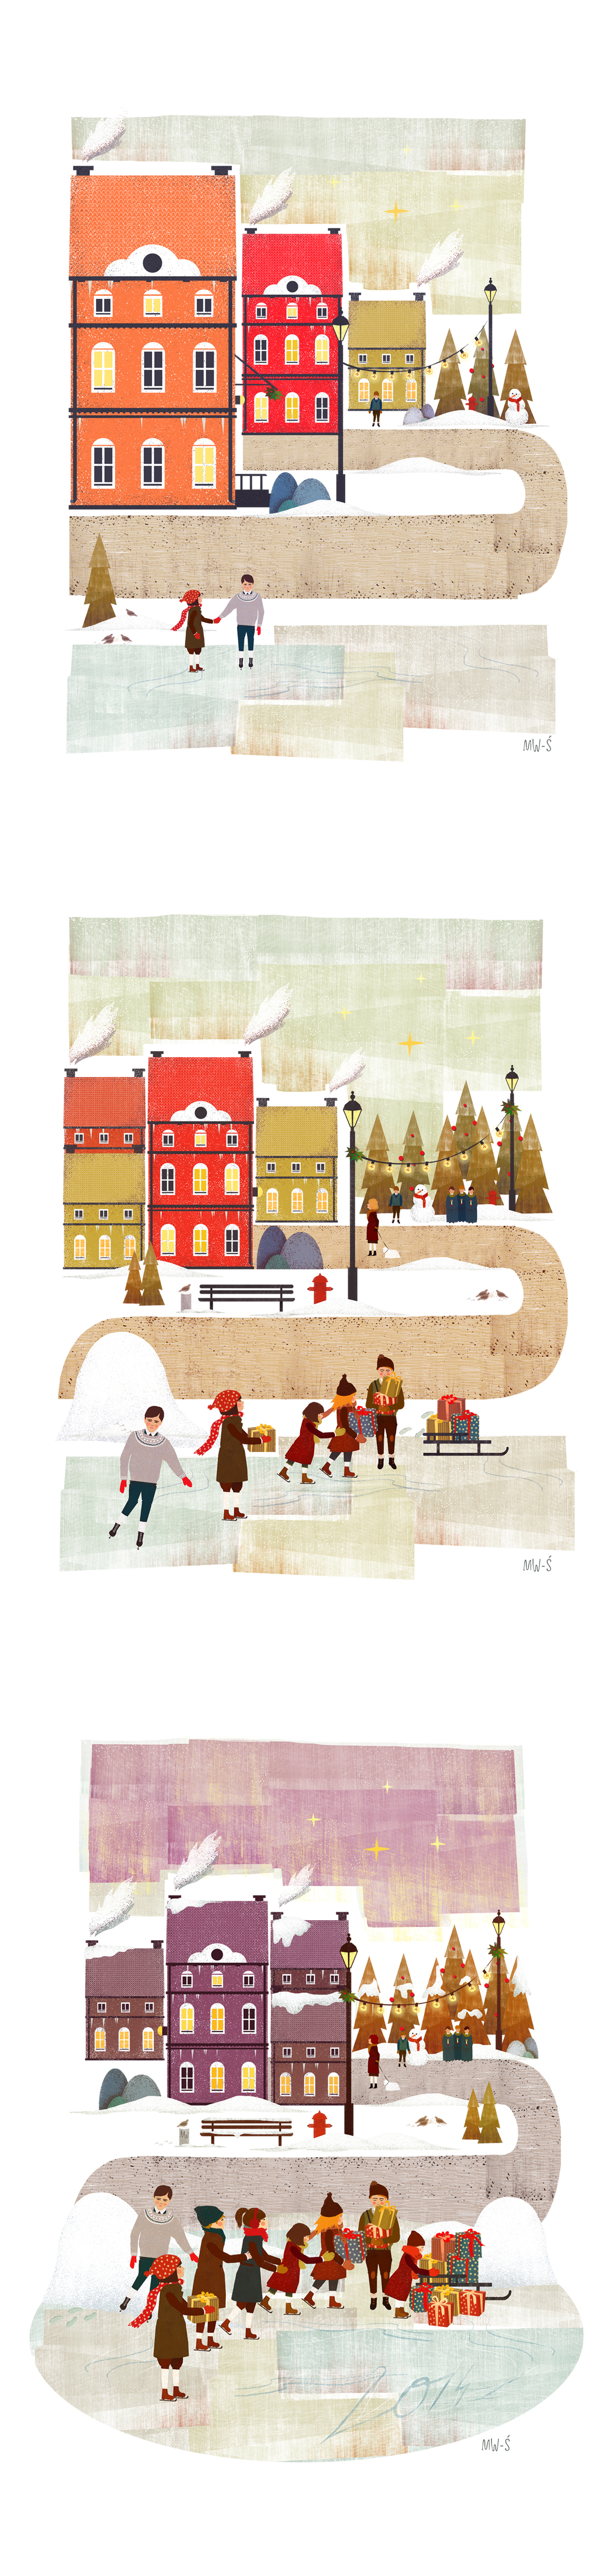 CHRISTMAS ILLUSTRATIONS - BGK